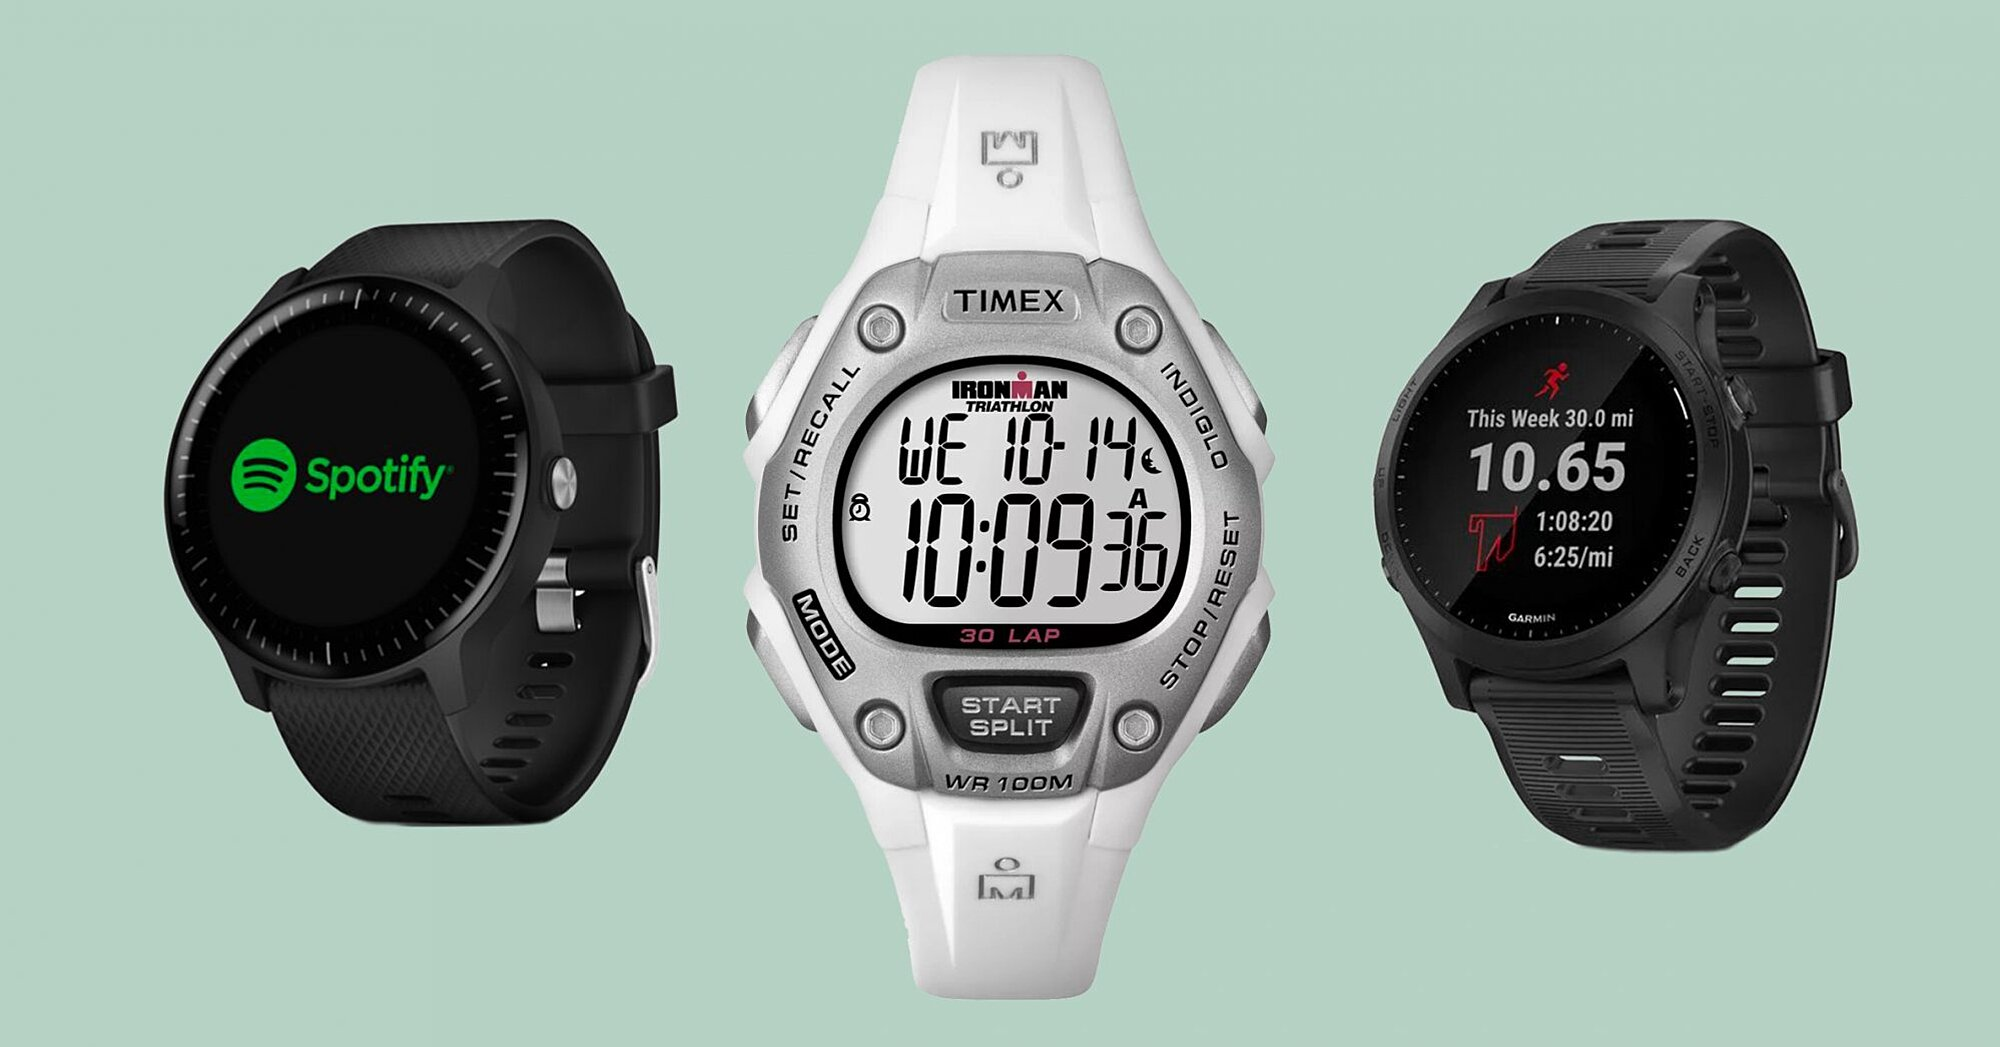 The Best Running Watches to Take Your Training to the Next Level